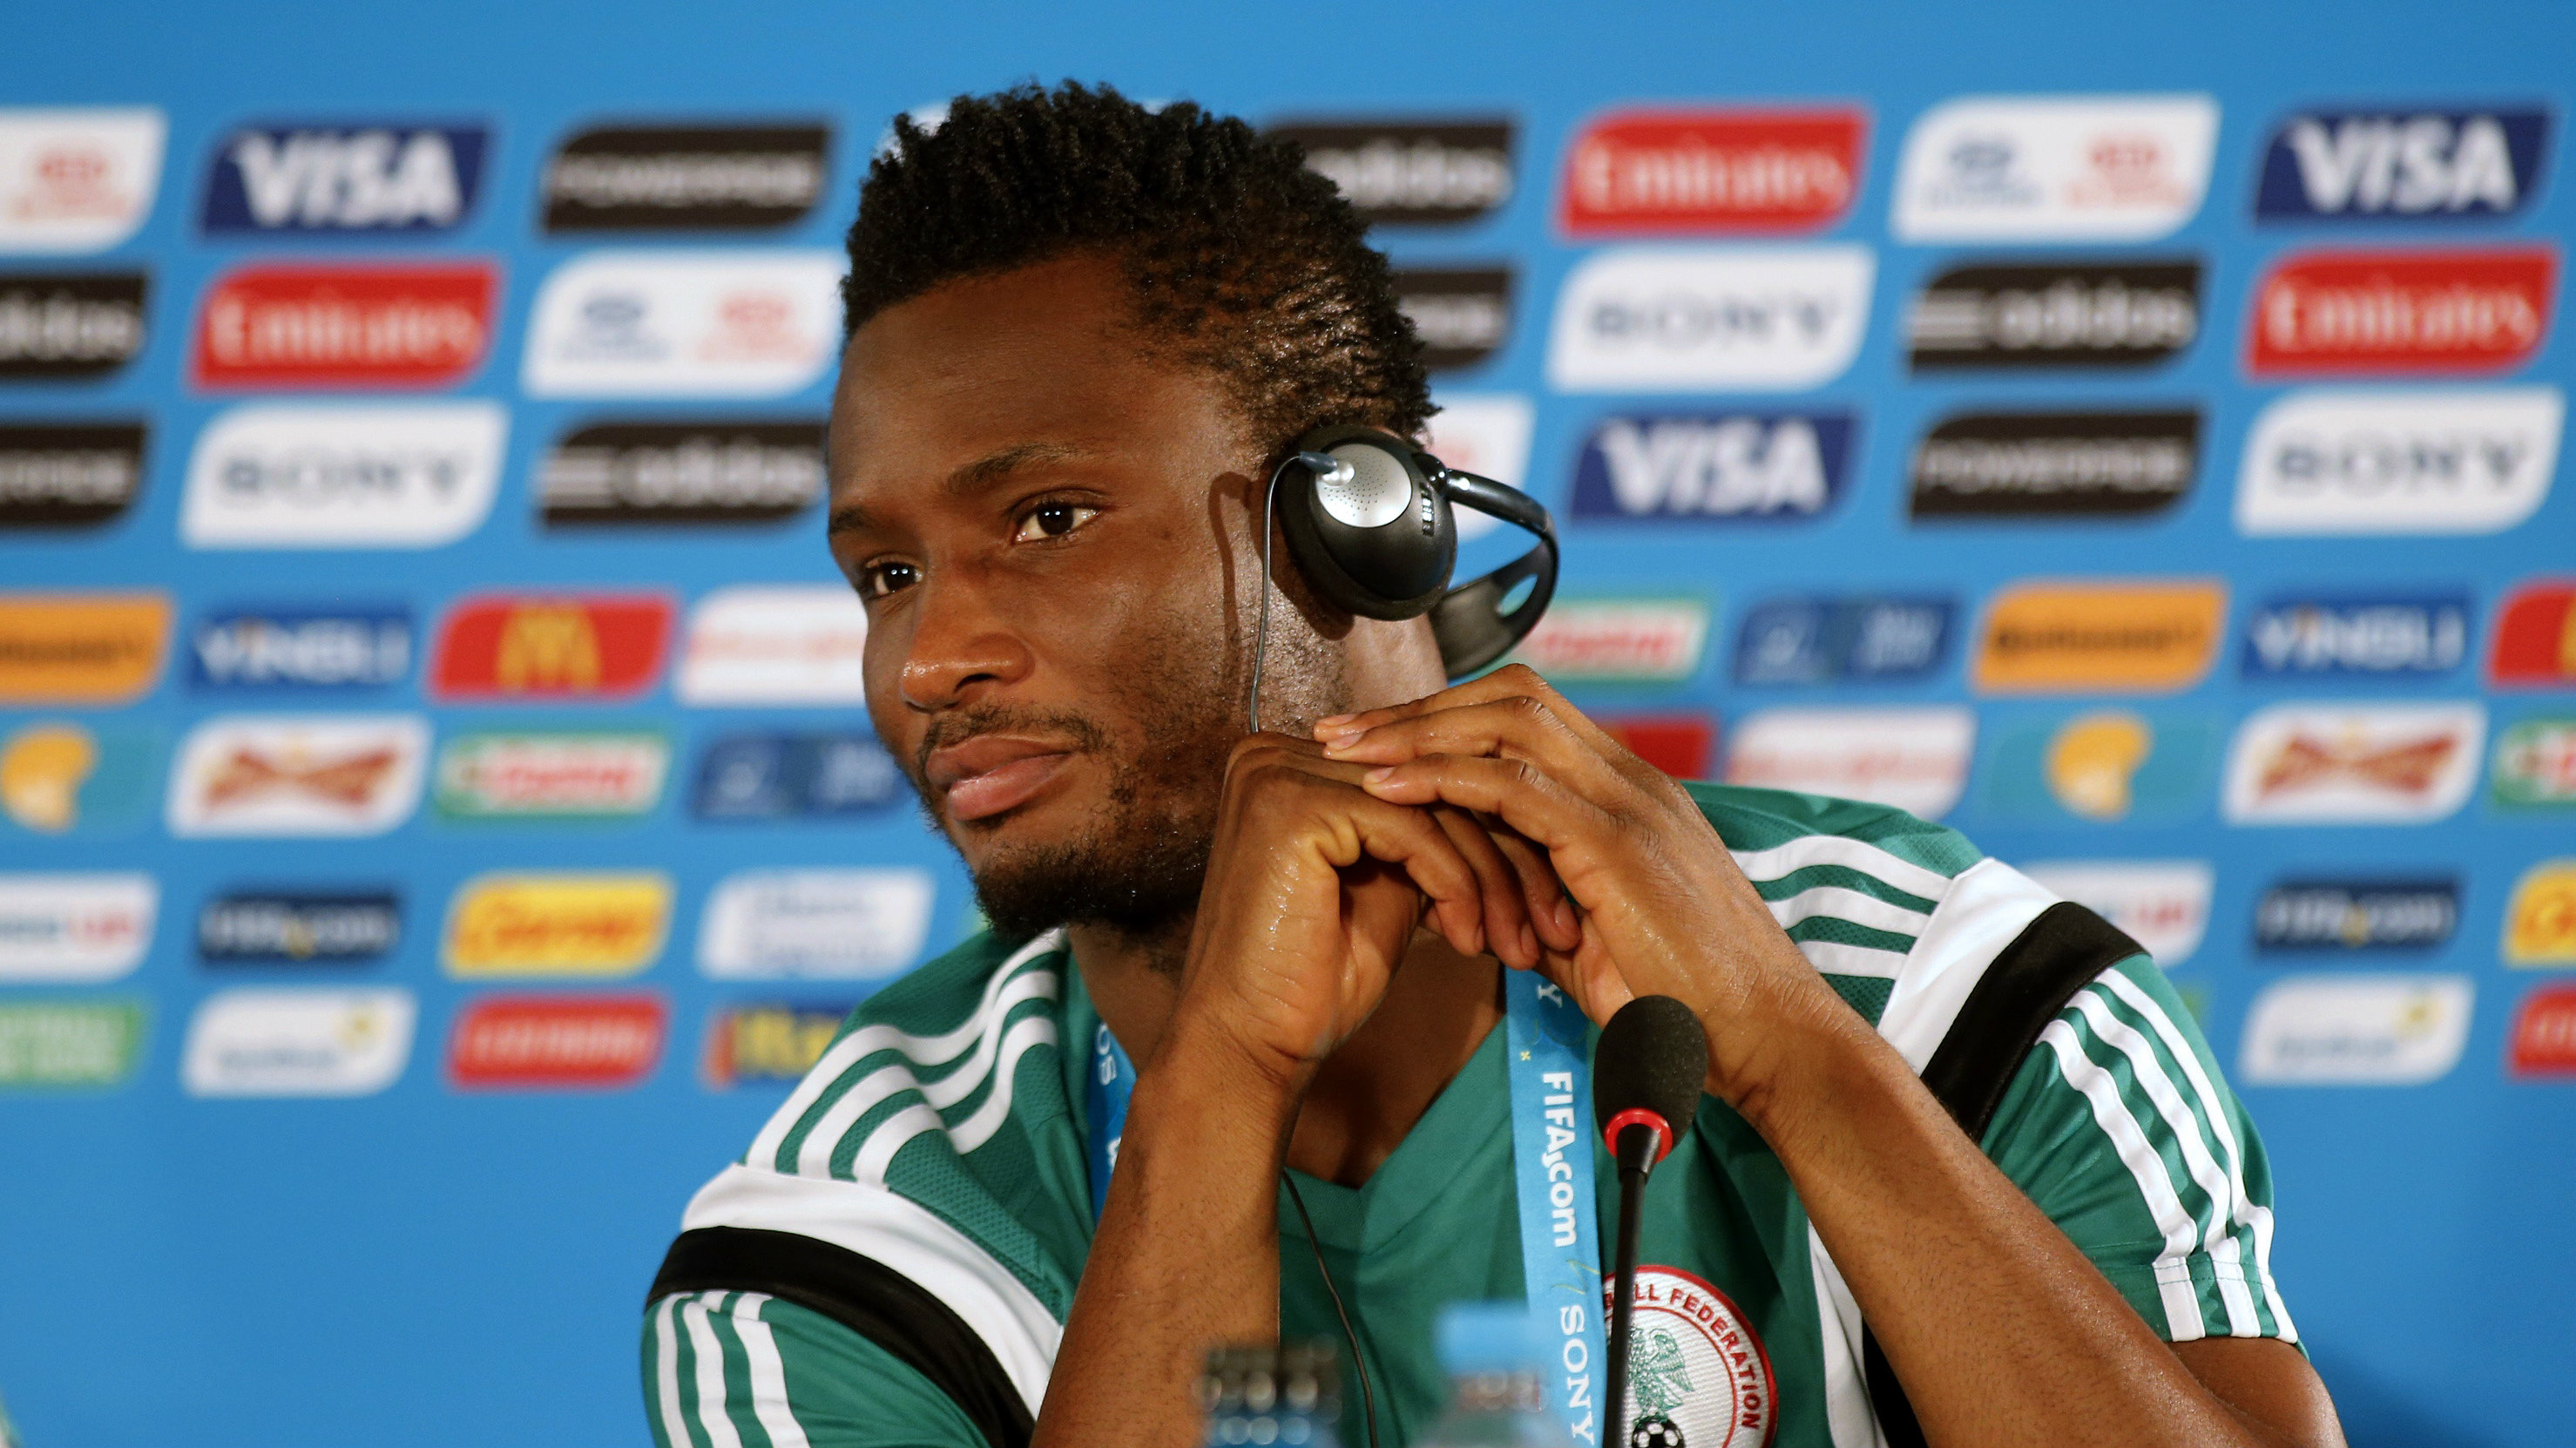 Nigeria's national soccer player John Obi Mikel attends a news conference at the Brasilia national stadium, ahead of their 2014 World Cup round of 16 soccer match against France, June 29, 2014.